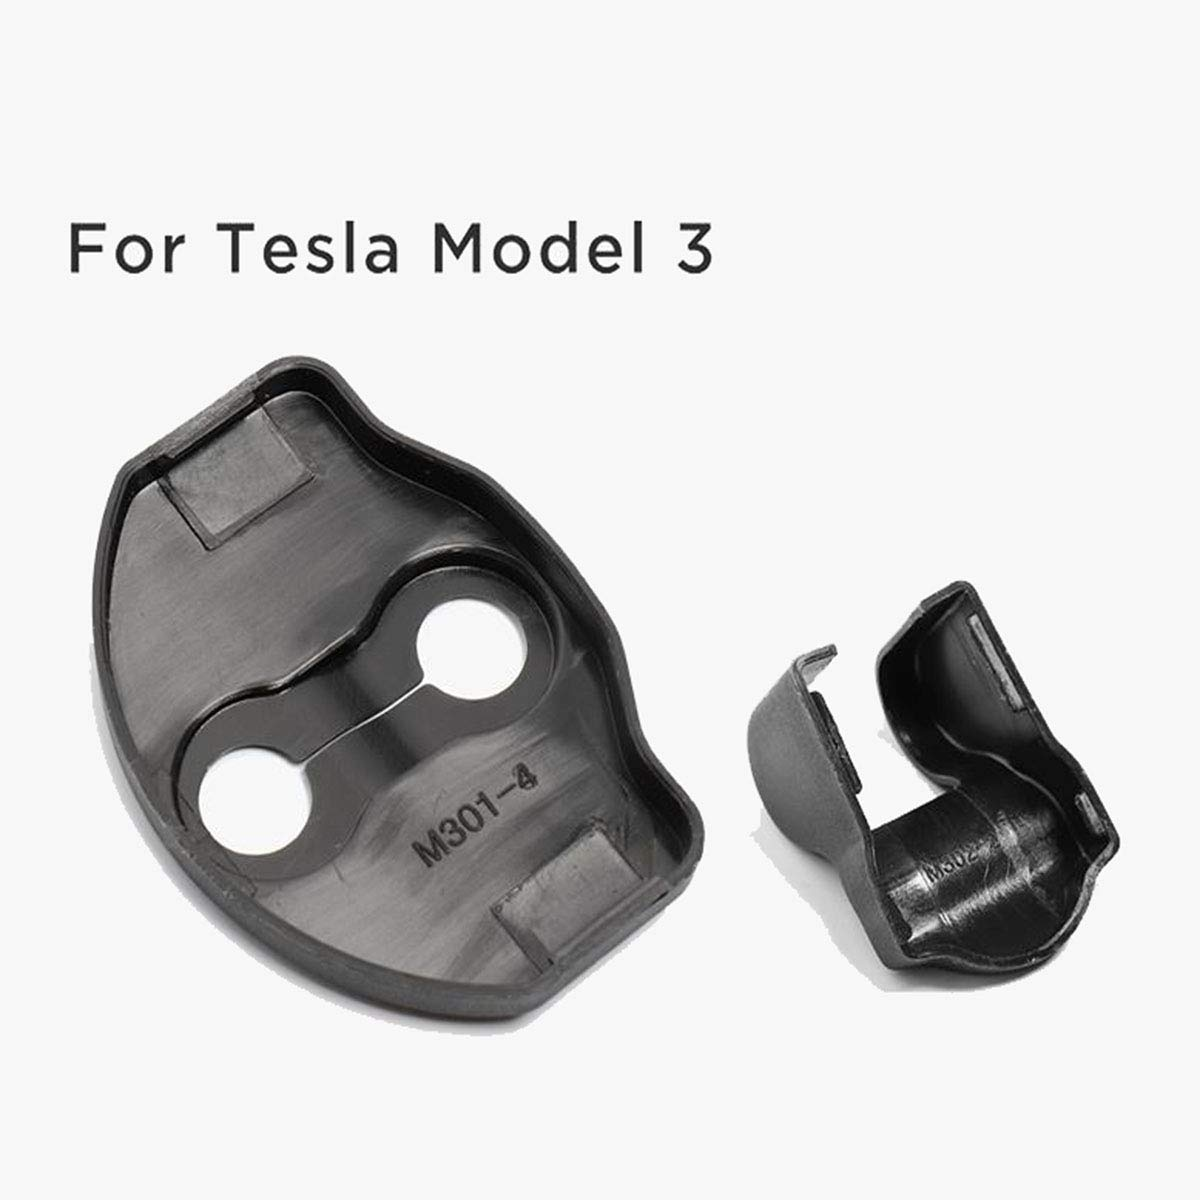 Door Stopper Covers 2pc Fit for Tesla Model 3 6 PCS Door Lock Striker Cover Kit Include Door Lock Latches Covers Covers 4pcs